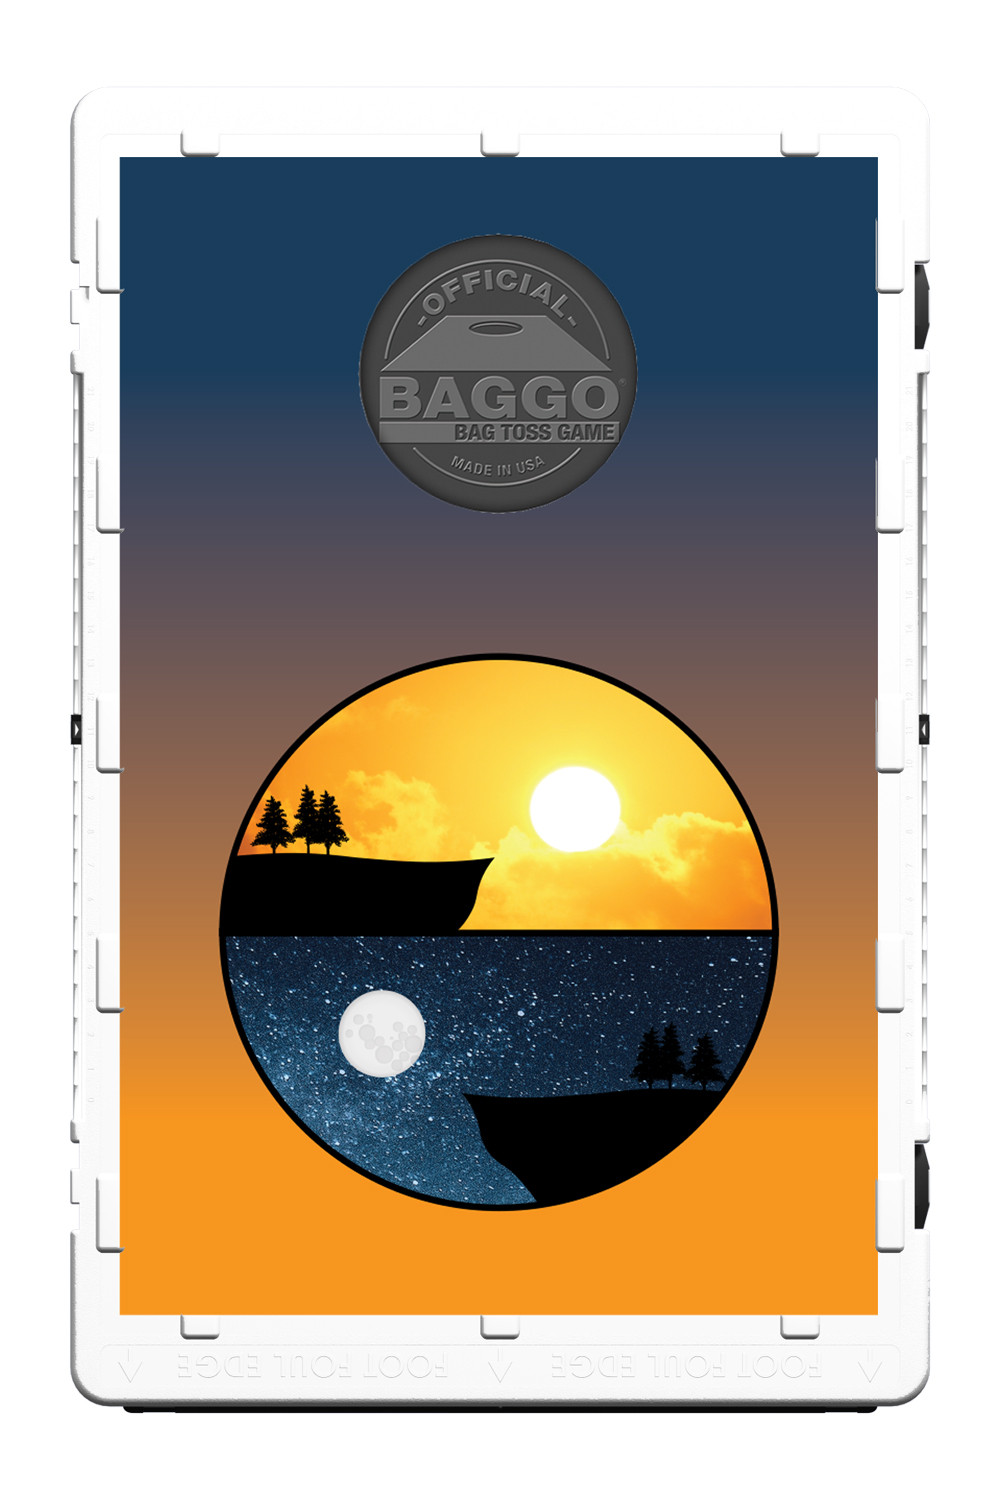 Cliff Yin-Yang Screens (only) by Baggo